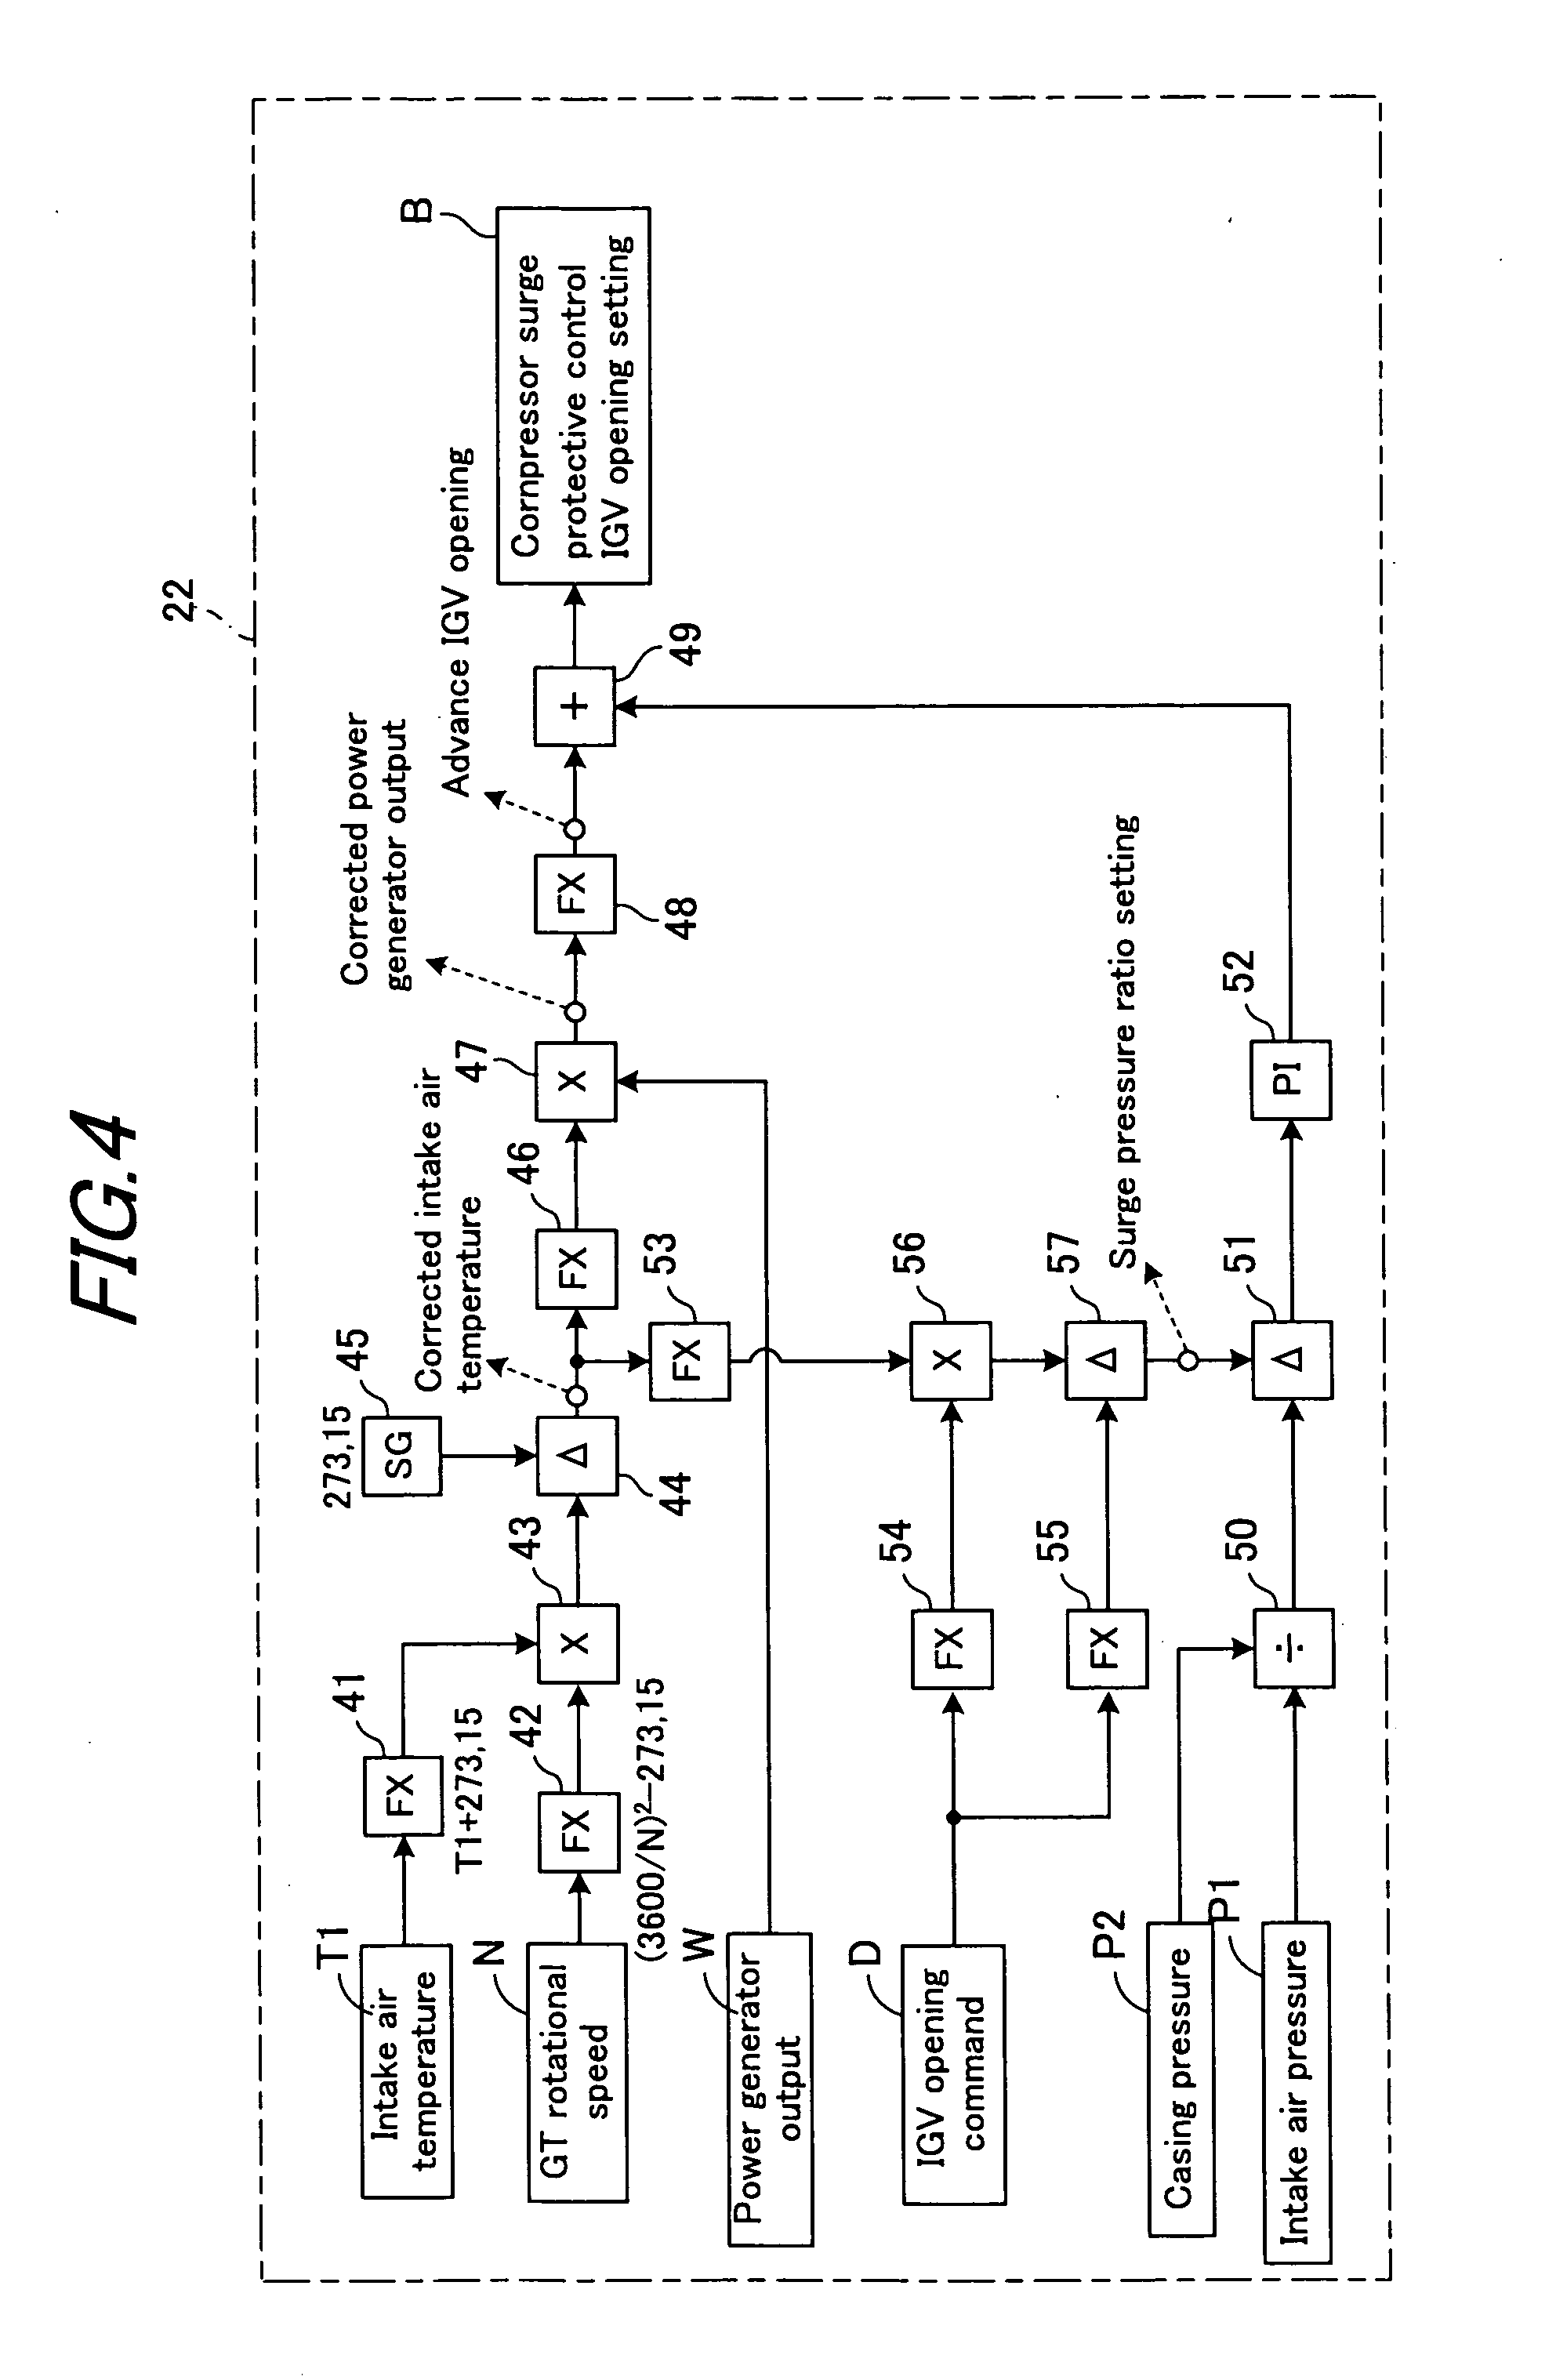 patent us20070031238 - inlet guide vane control device of gas turbine